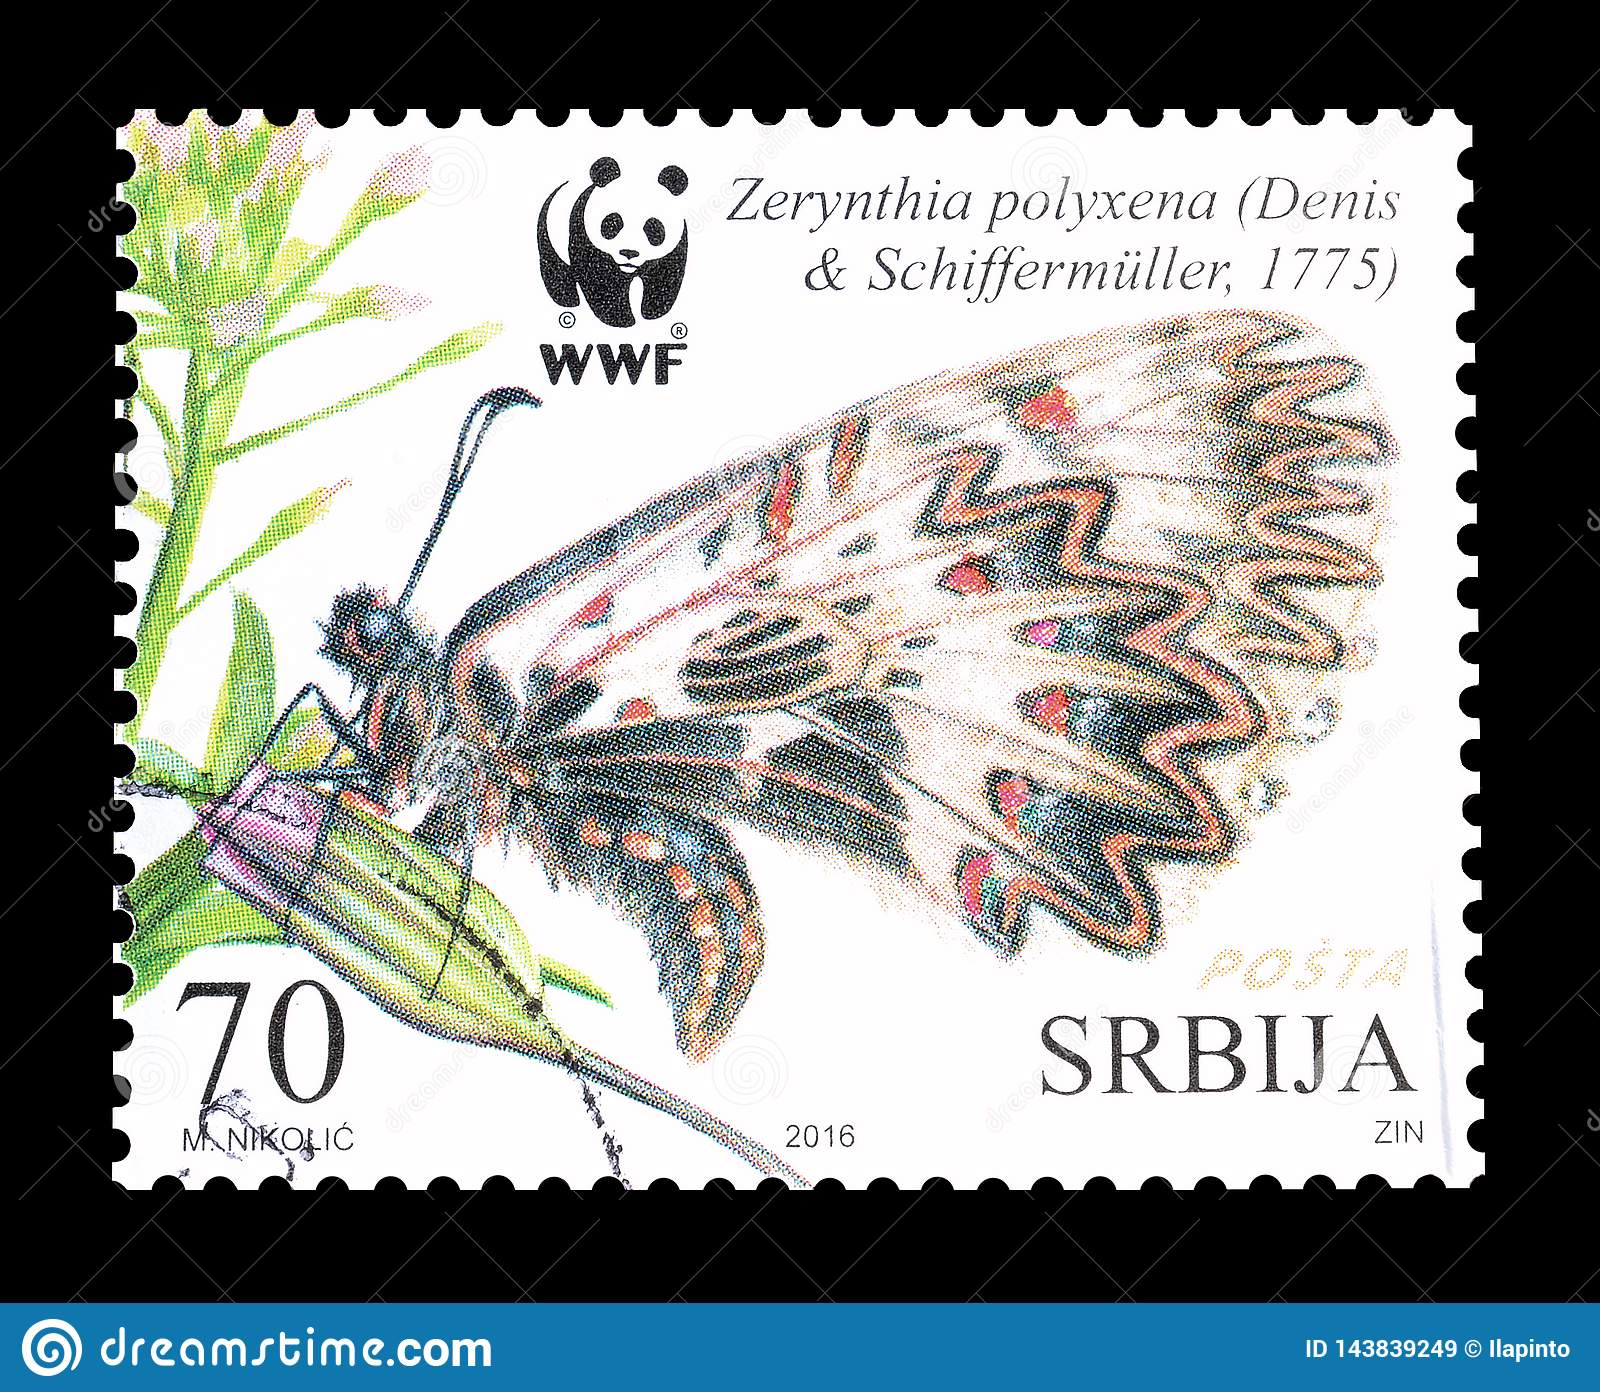 serbia on postage stamps